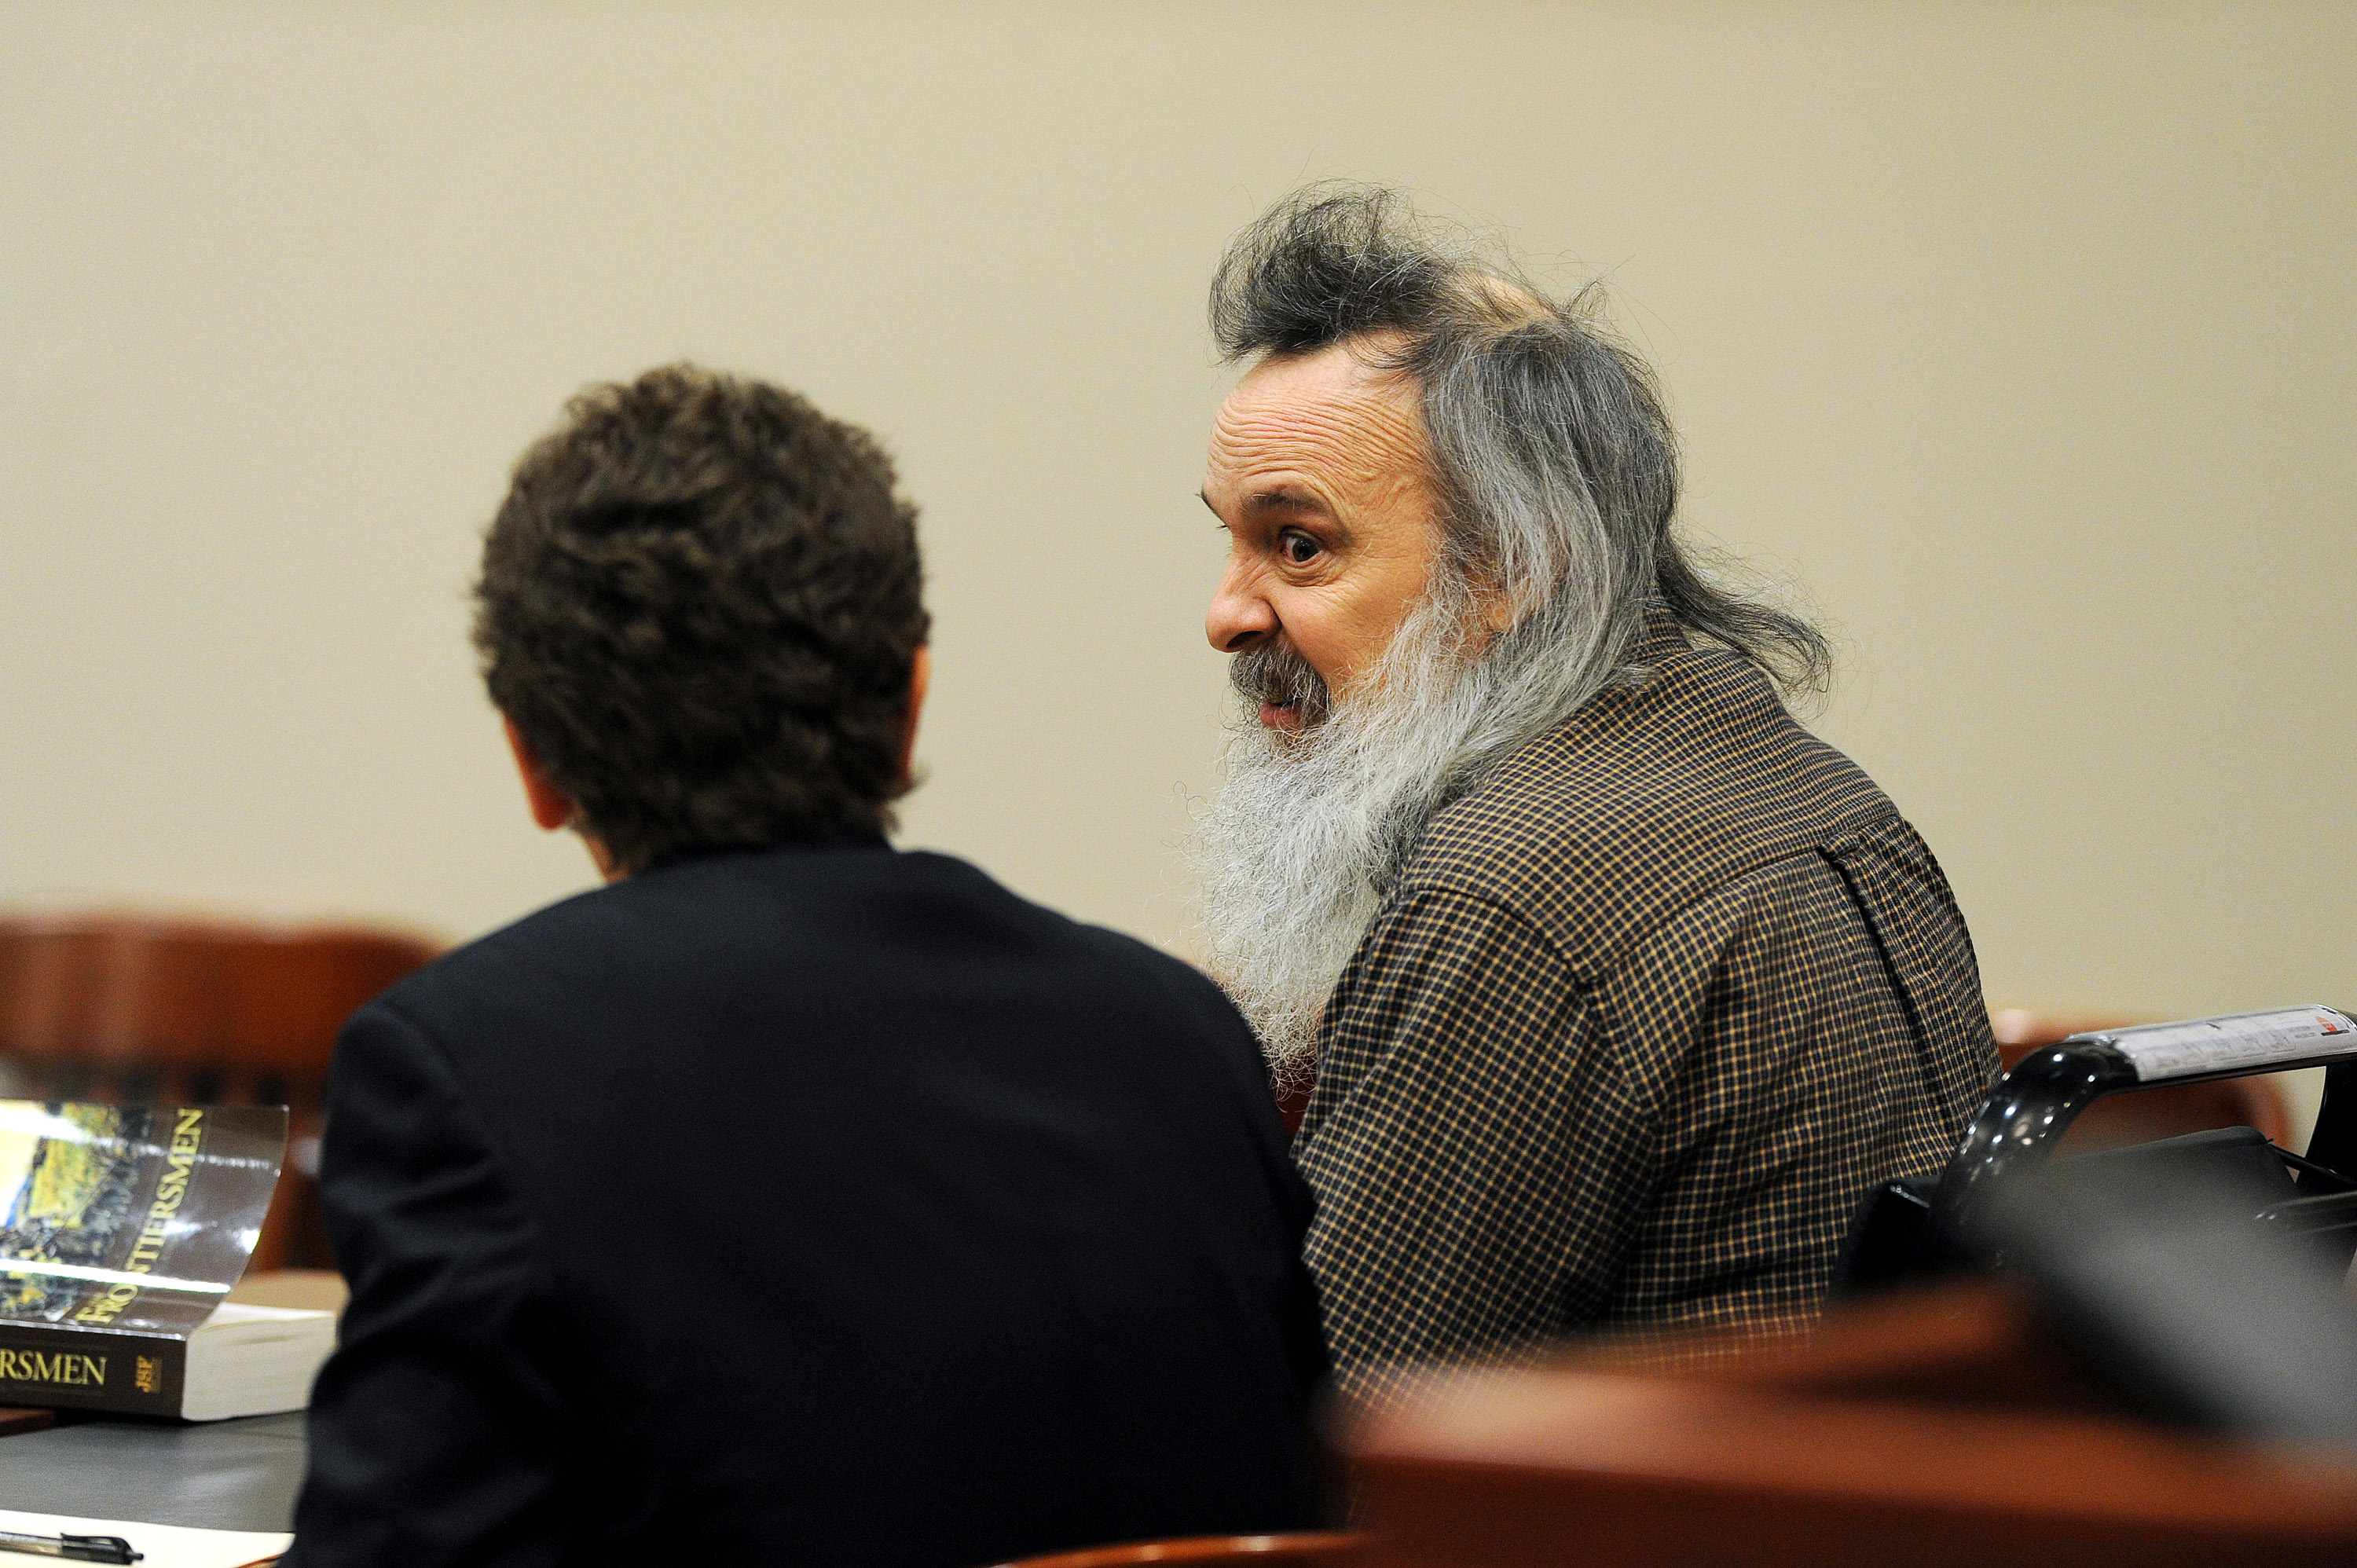 Severance trial begins with emotional testimony from survivor